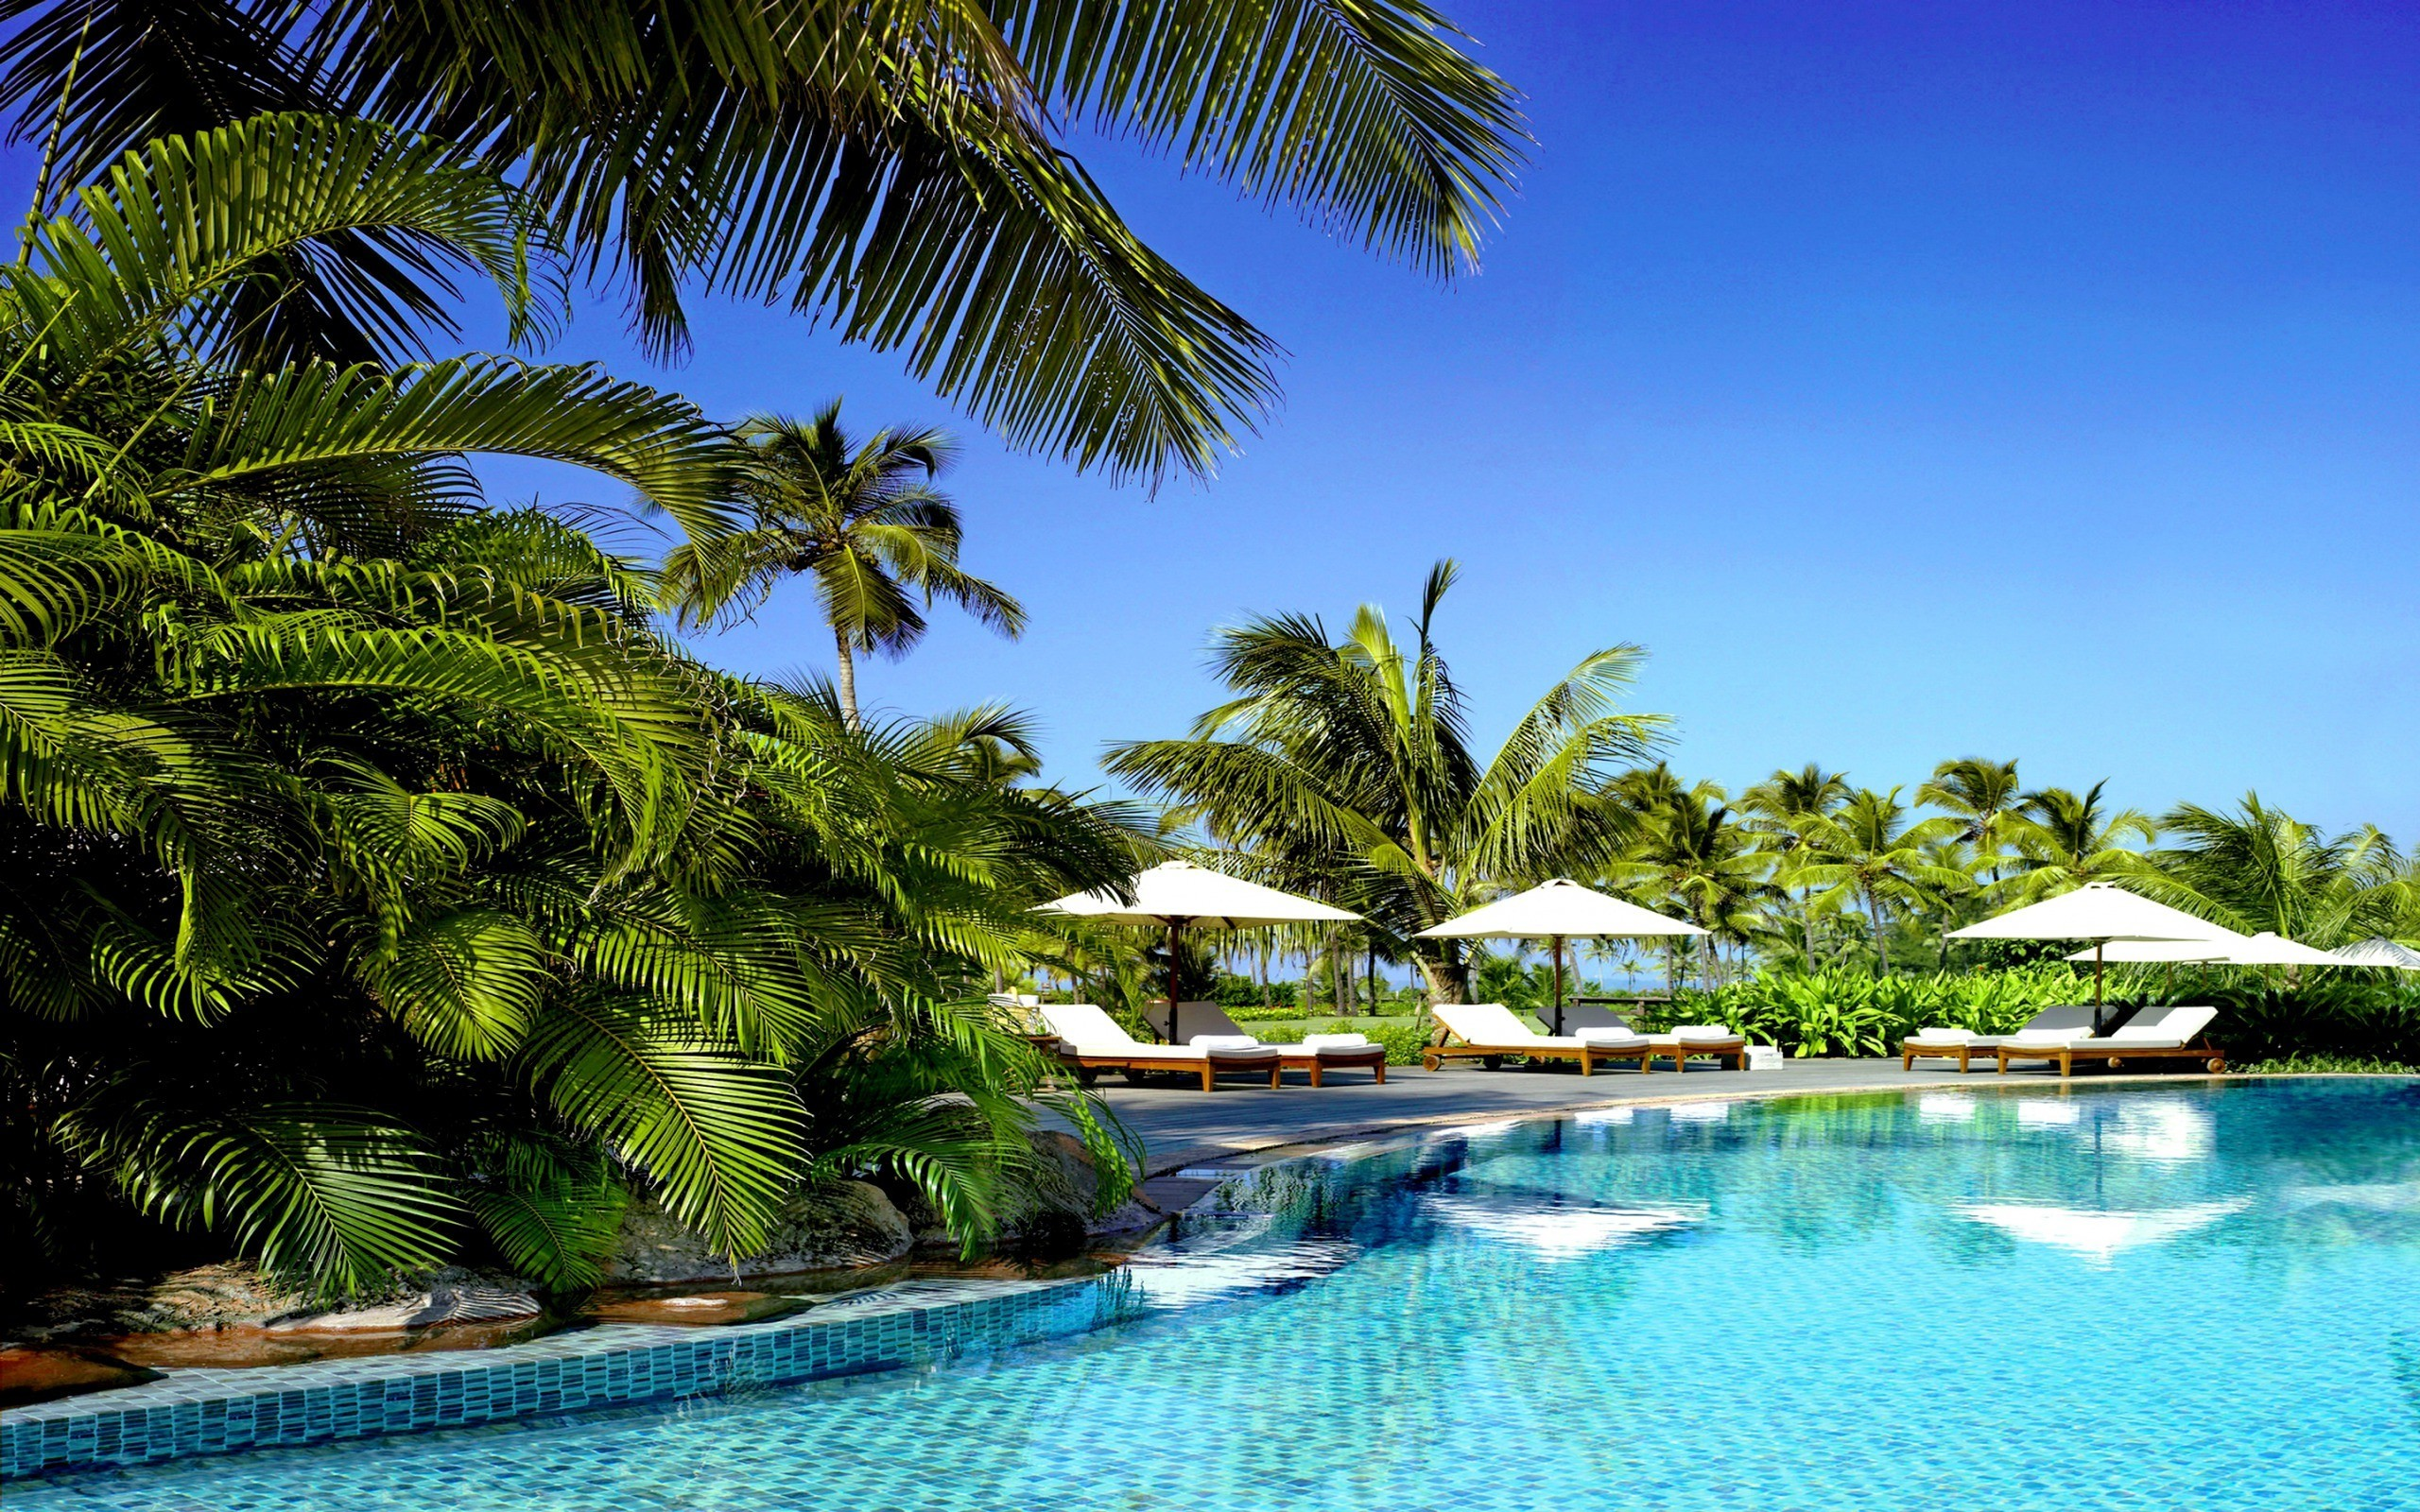 Palm trees swimming pools tropical wallpaper 10895 pc en for Best palm tree for swimming pool